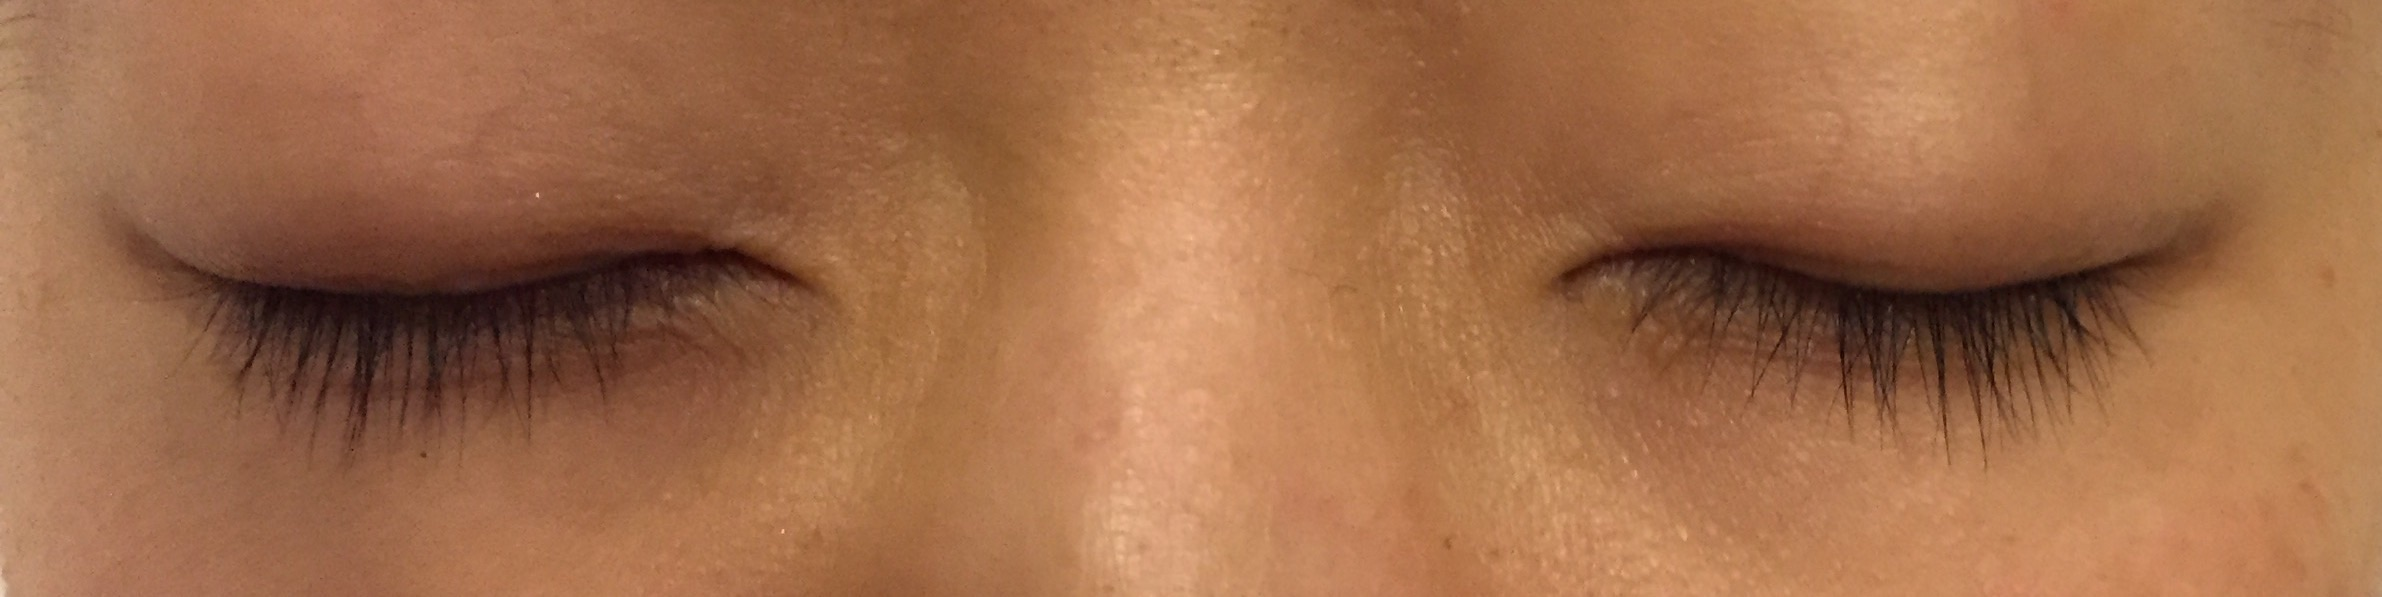 1/19/15 After about 1.5 months of inconsistent use of Lashfood